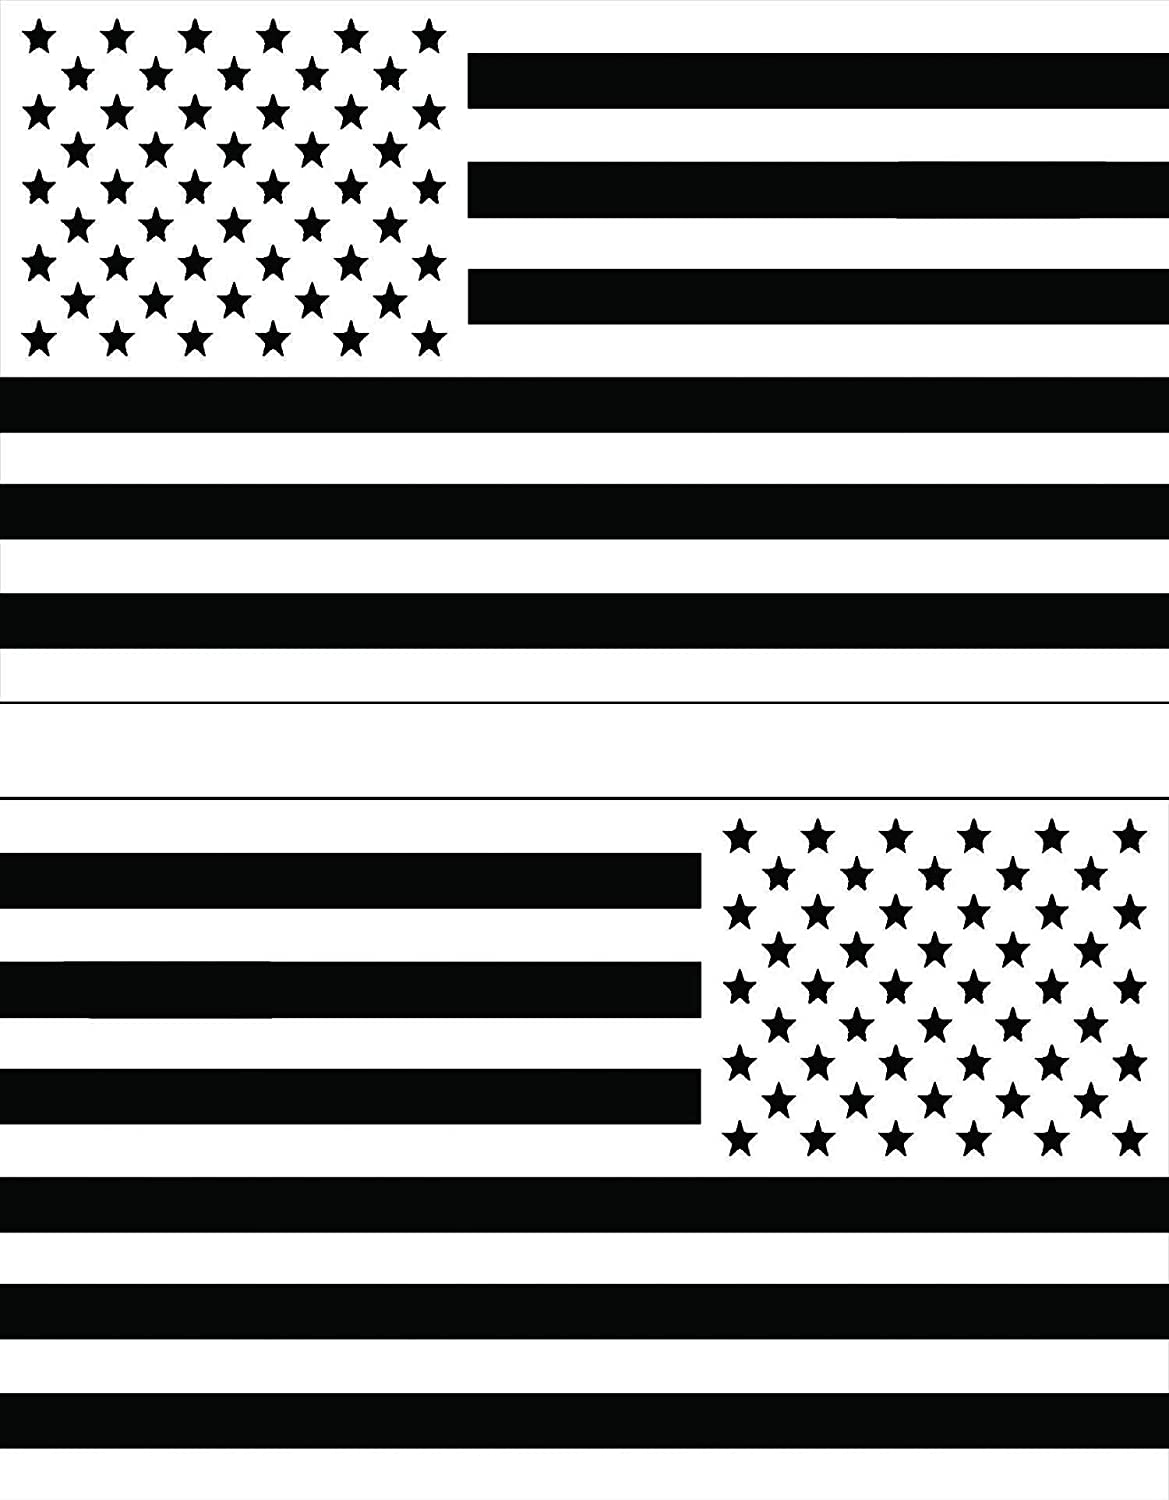 "OTA Sticker American Flag Thin White LINE Subdued (Left-Right) USA EMS Official Doctor Ranger Nurses Rock Medical Heavy Decal Laptop Car Window Door Wall Motorcycle Helmet Set Size 3"" x 5""inch"